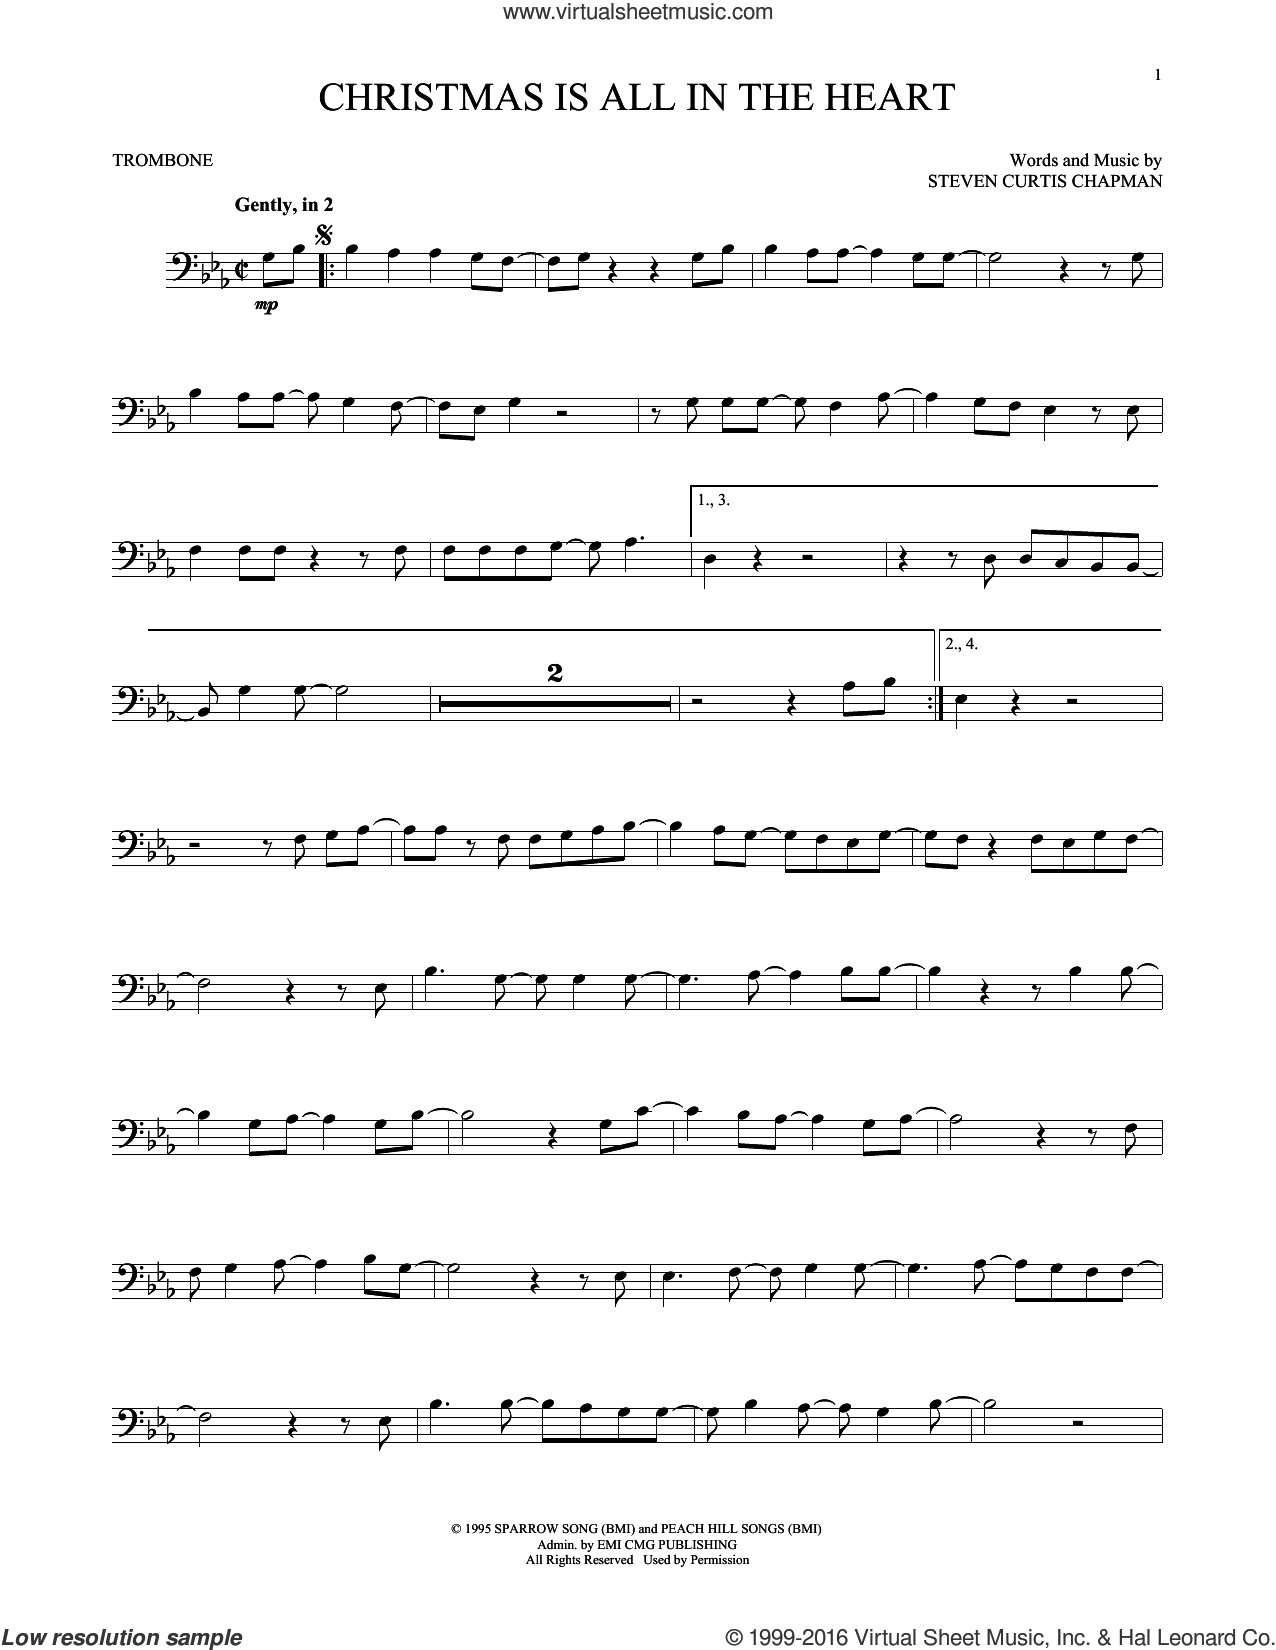 Christmas Is All In The Heart sheet music for trombone solo by Steven Curtis Chapman, intermediate skill level